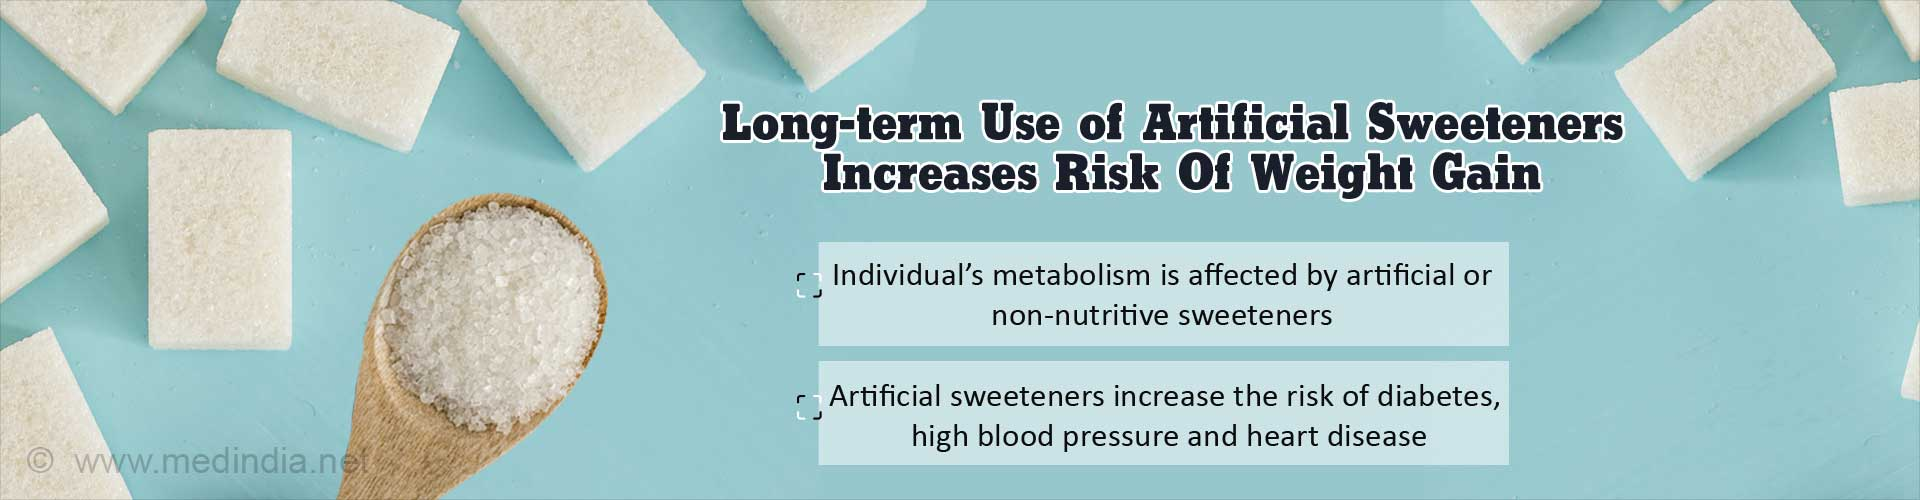 Do Artificial Sweeteners Increase Risk Of Weight Gain, Heart Disease?